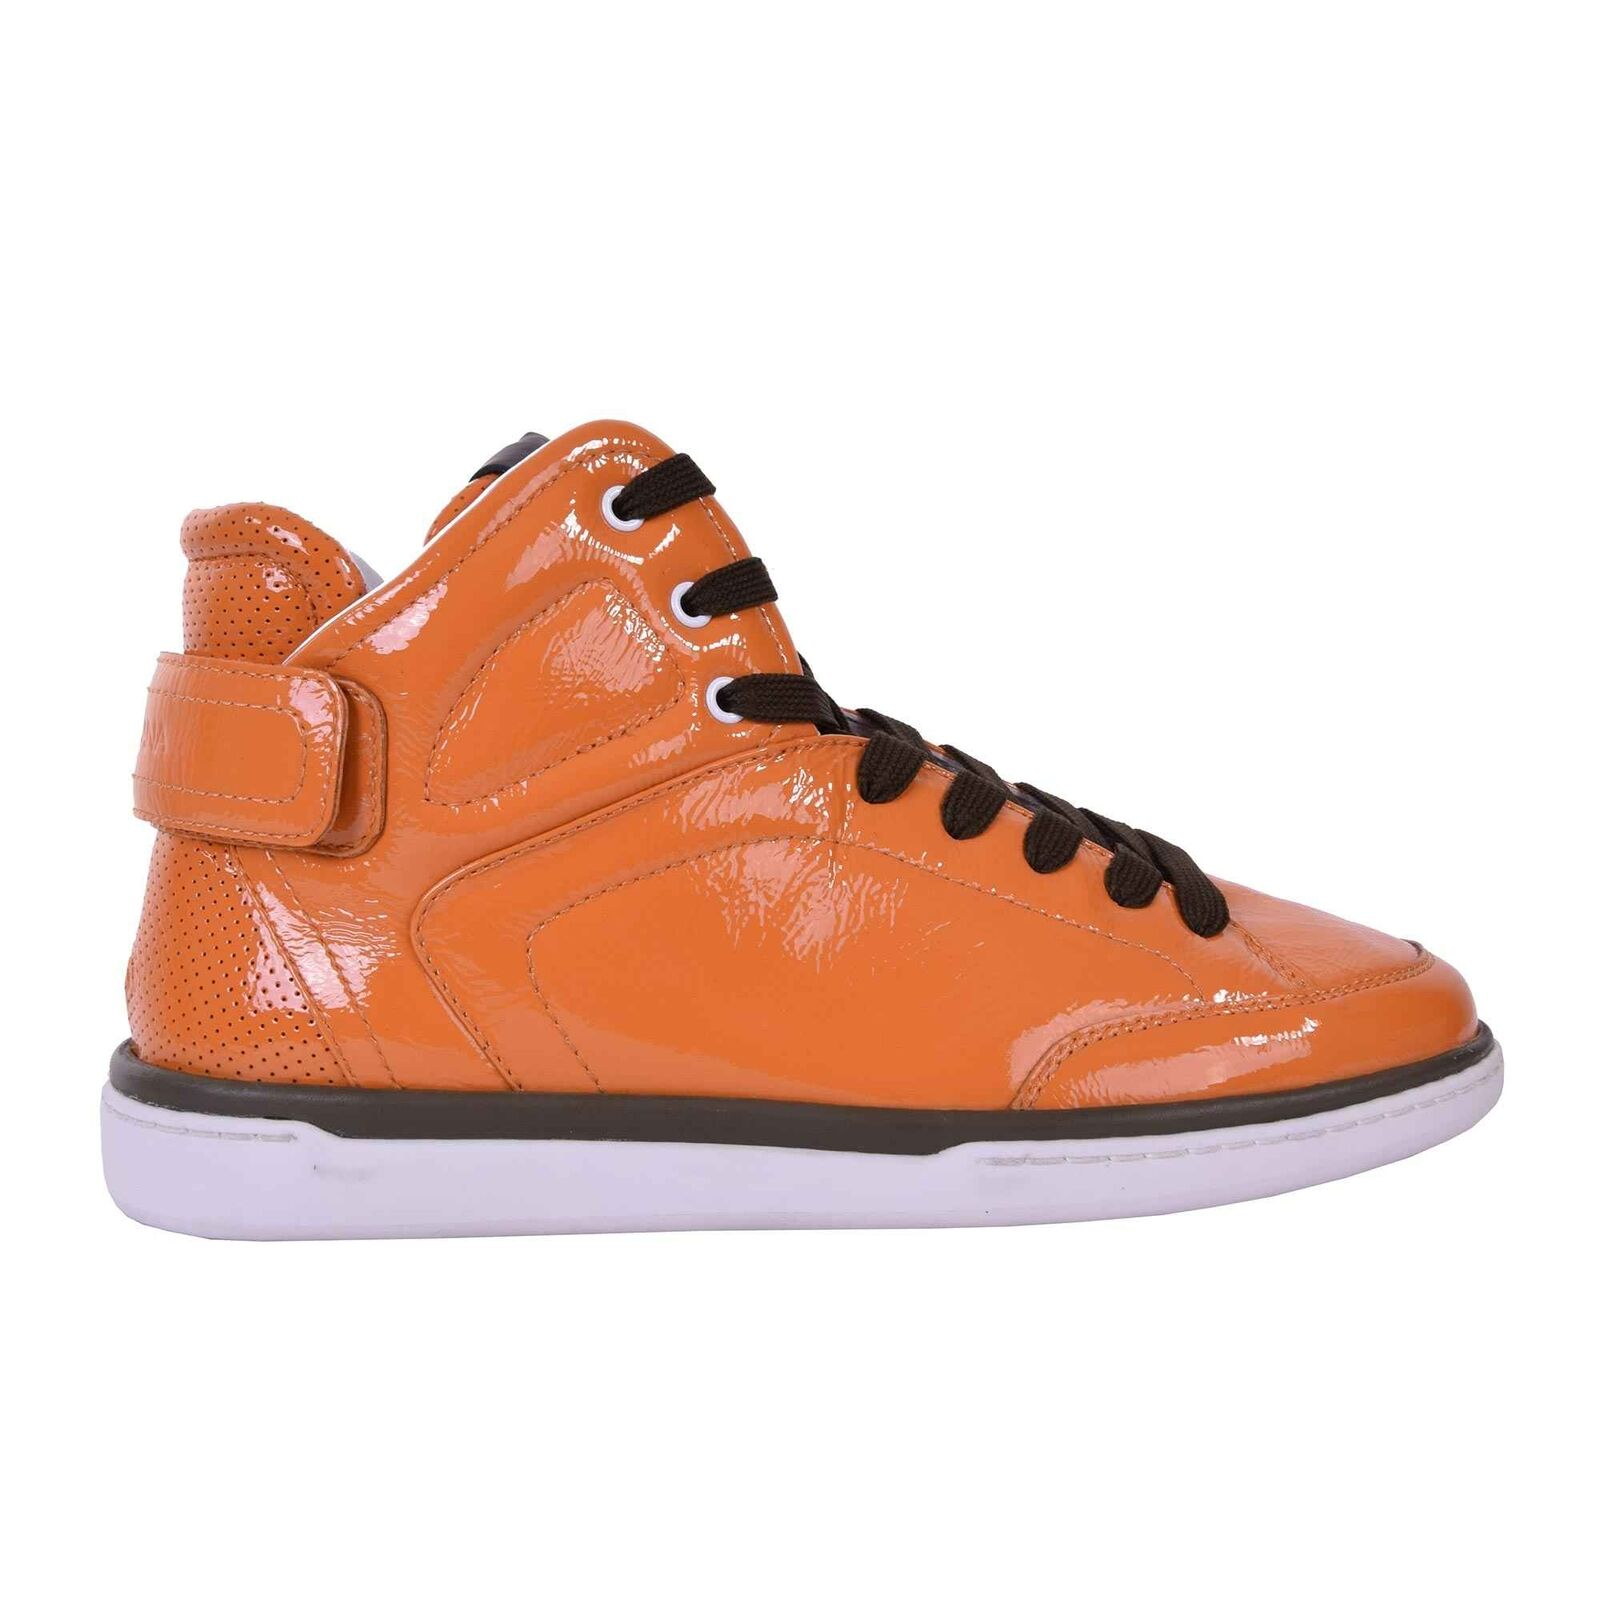 DOLCE & GABBANA High-Top Lackleder Sneakers 05935 Sneaker Zapatos USLER Naranja 05935 Sneakers 613641